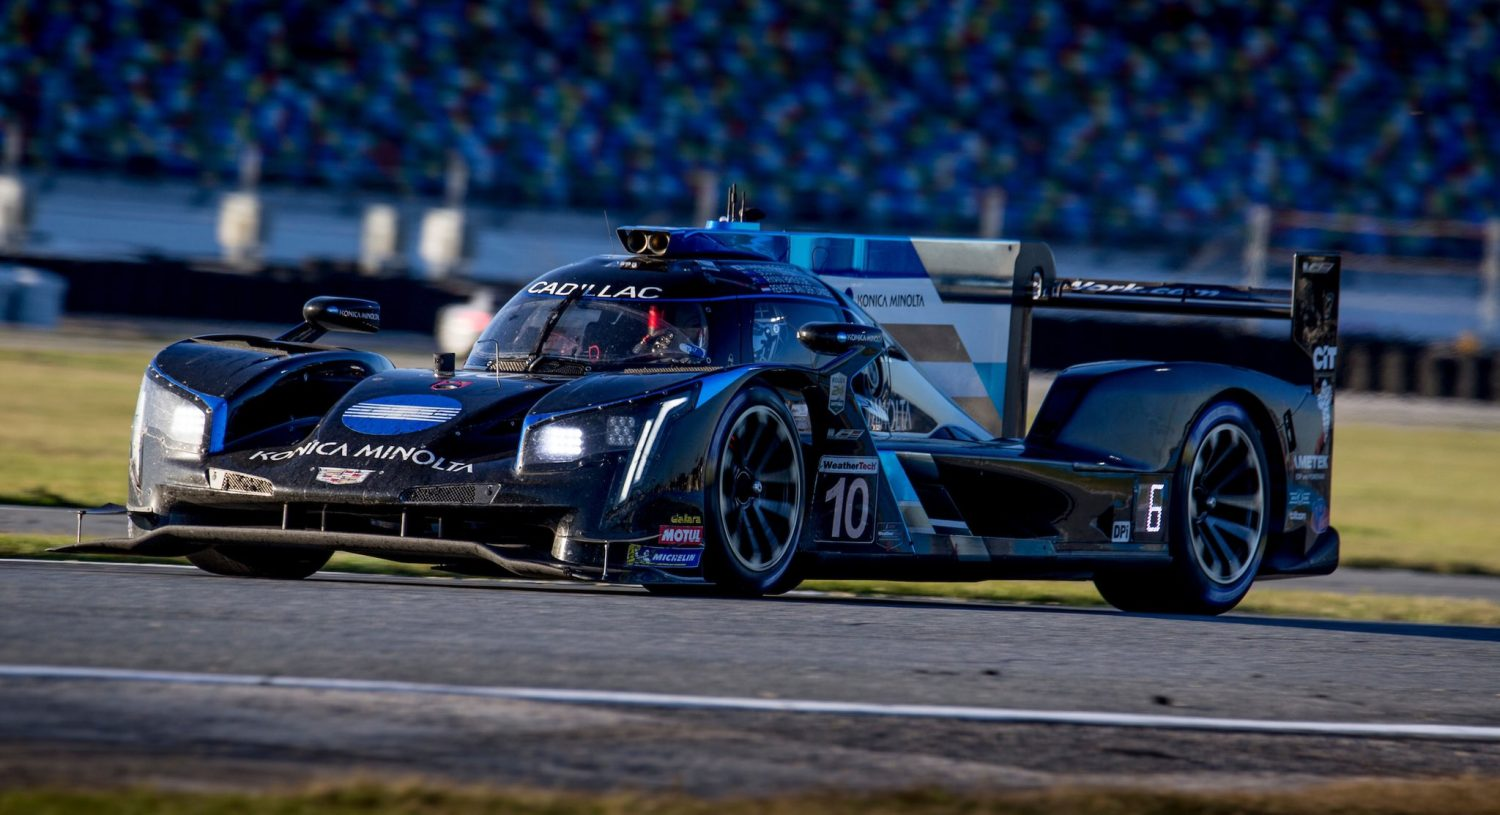 ECR Engines Claims Its Fourth Consecutive Cadillac DPi Win at the 2020 Rolex 24 at Daytona